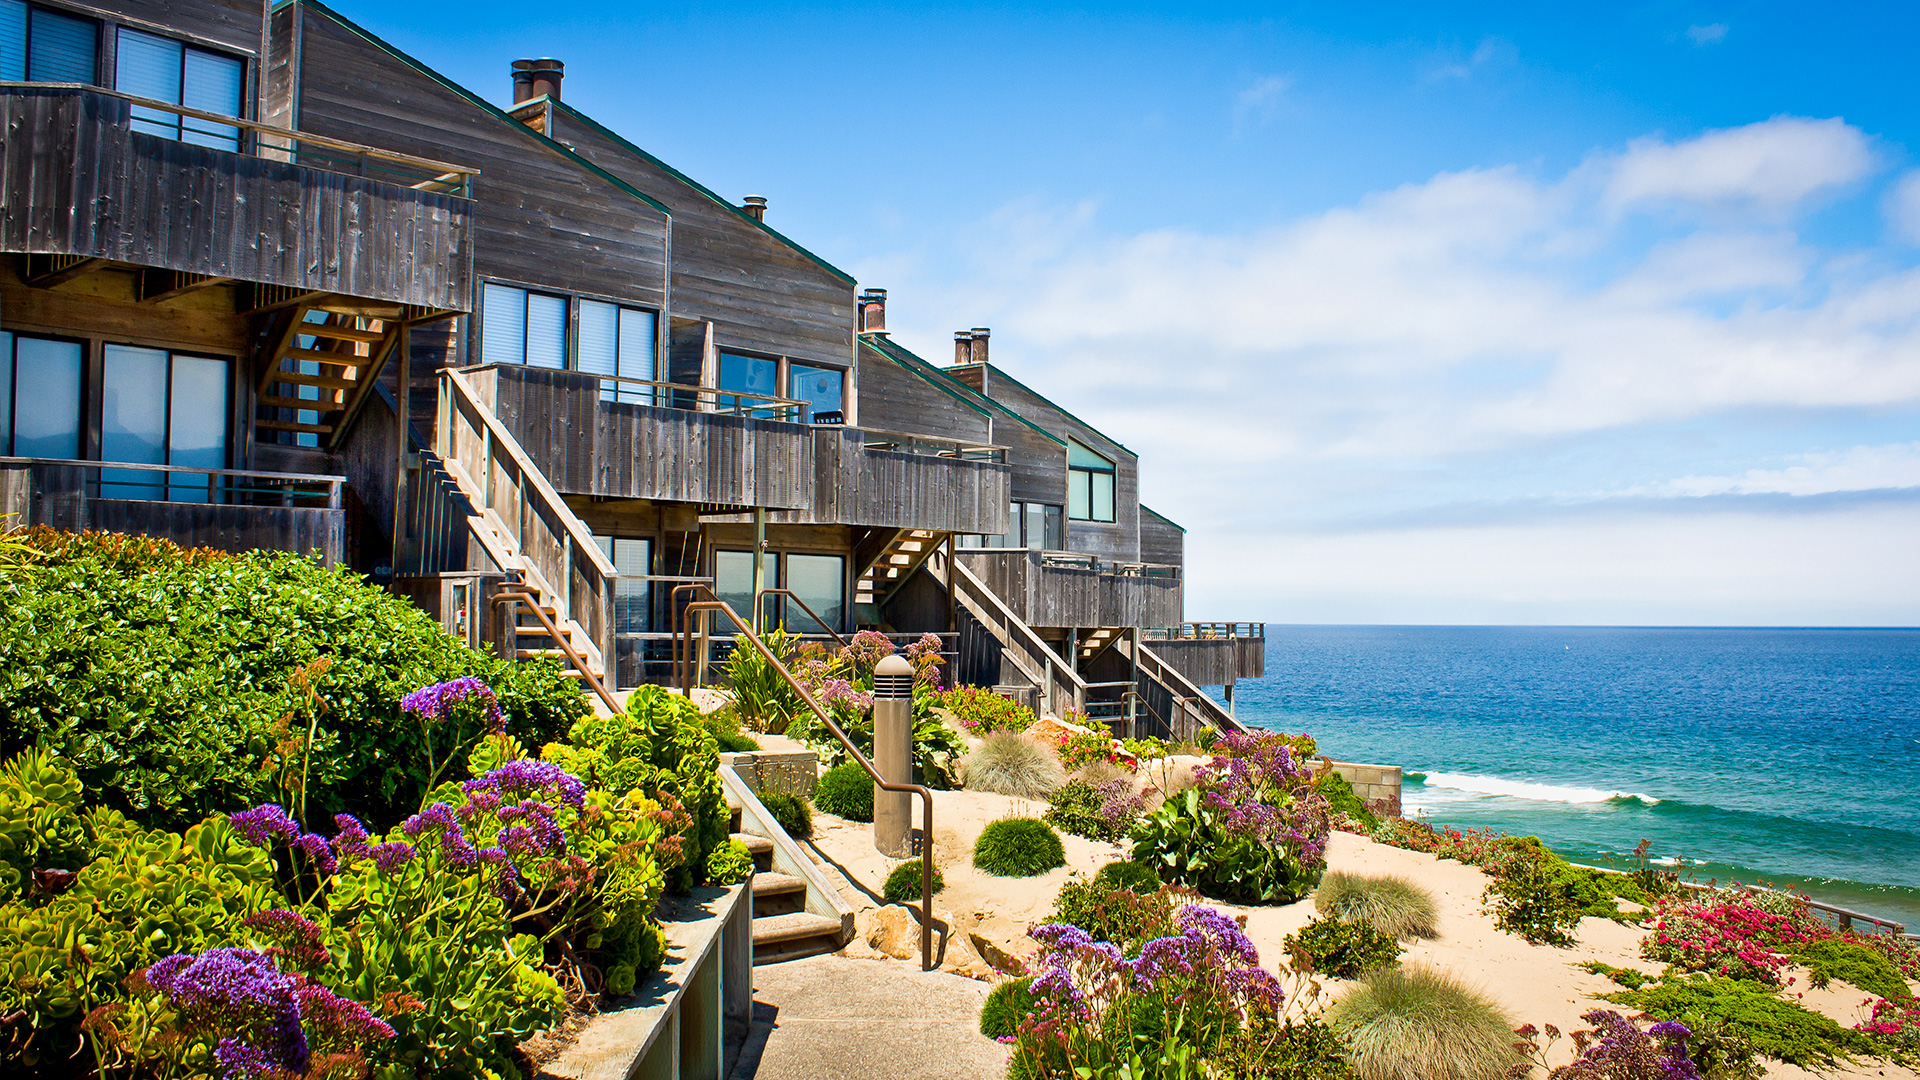 What Are The Reasons For Choosing The Best Vacation Rental For Yourself?